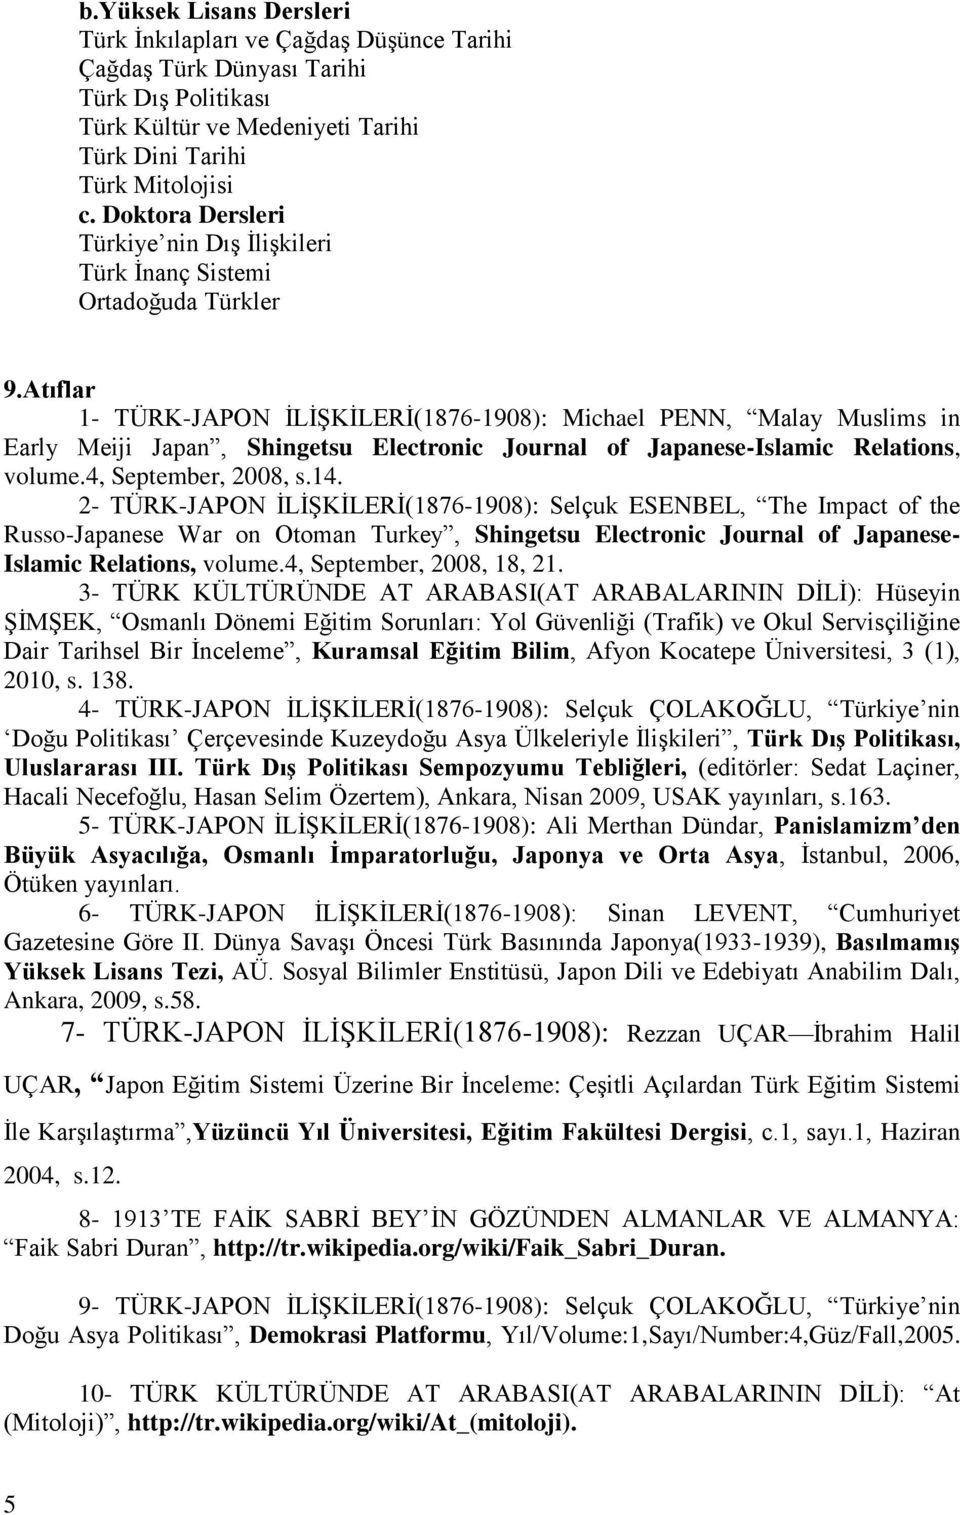 Atıflar 1- TÜRK-JAPON İLİŞKİLERİ(1876-1908): Michael PENN, Malay Muslims in Early Meiji Japan, Shingetsu Electronic Journal of Japanese-Islamic Relations, volume.4, September, 2008, s.14.